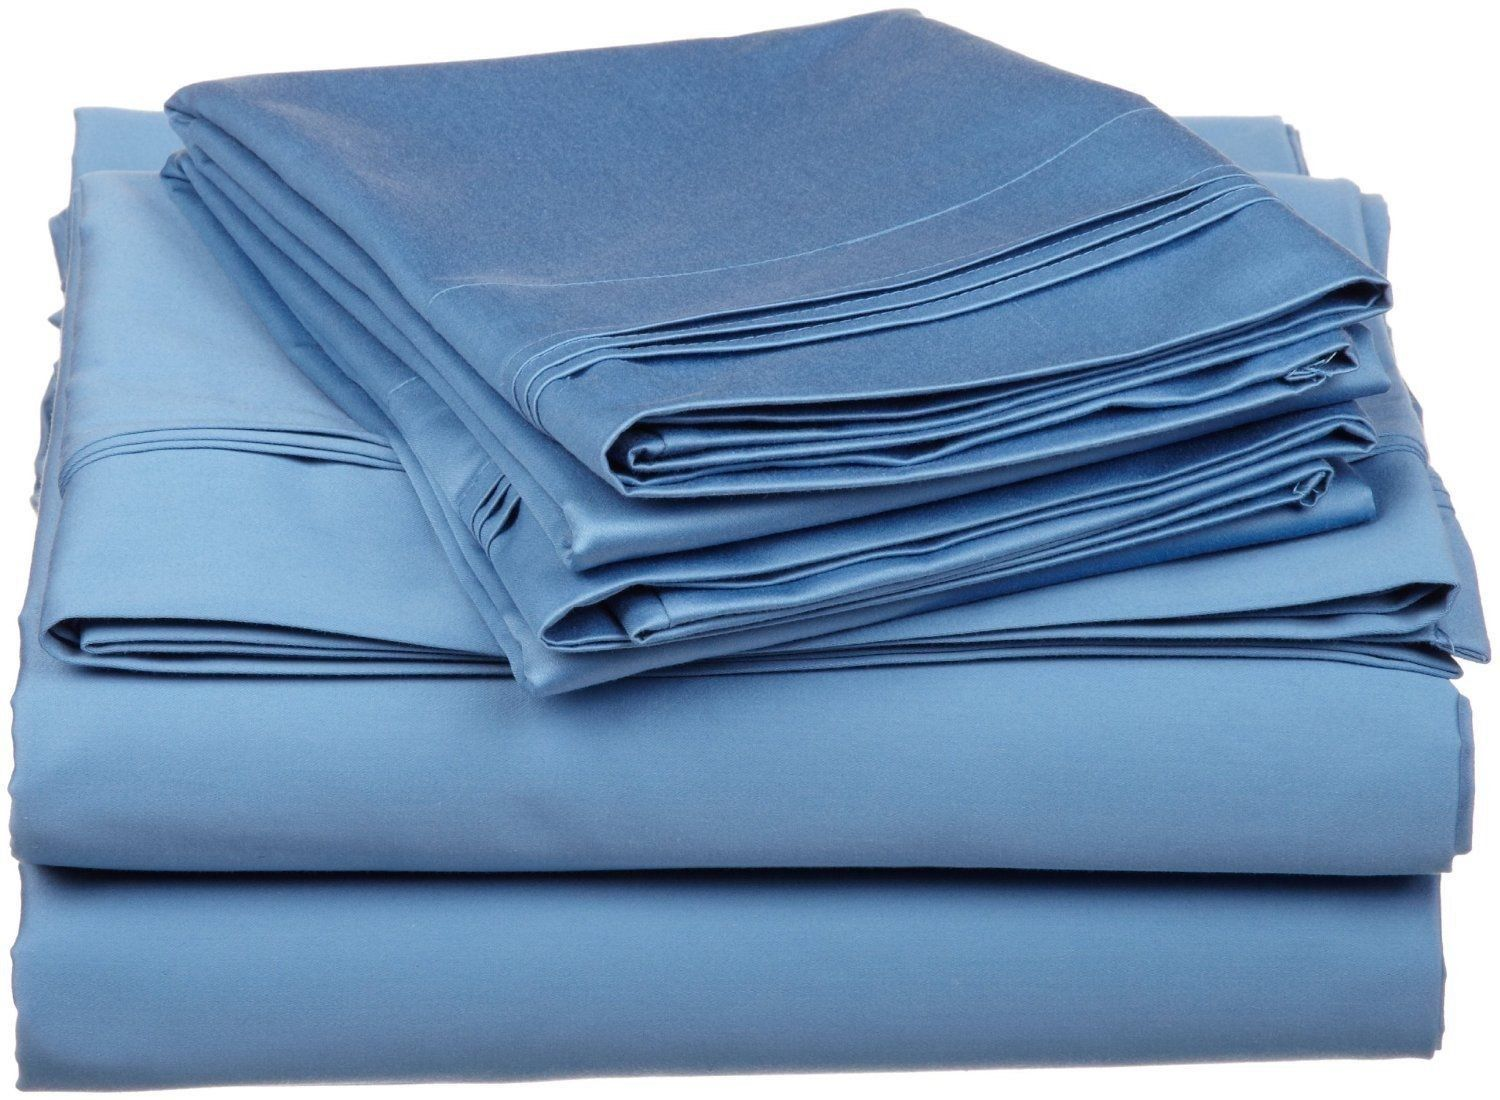 Fieldcrest Luxury Sheets | Fieldcrest Luxury Towels | Fieldcrest Matelasse  Coverlet